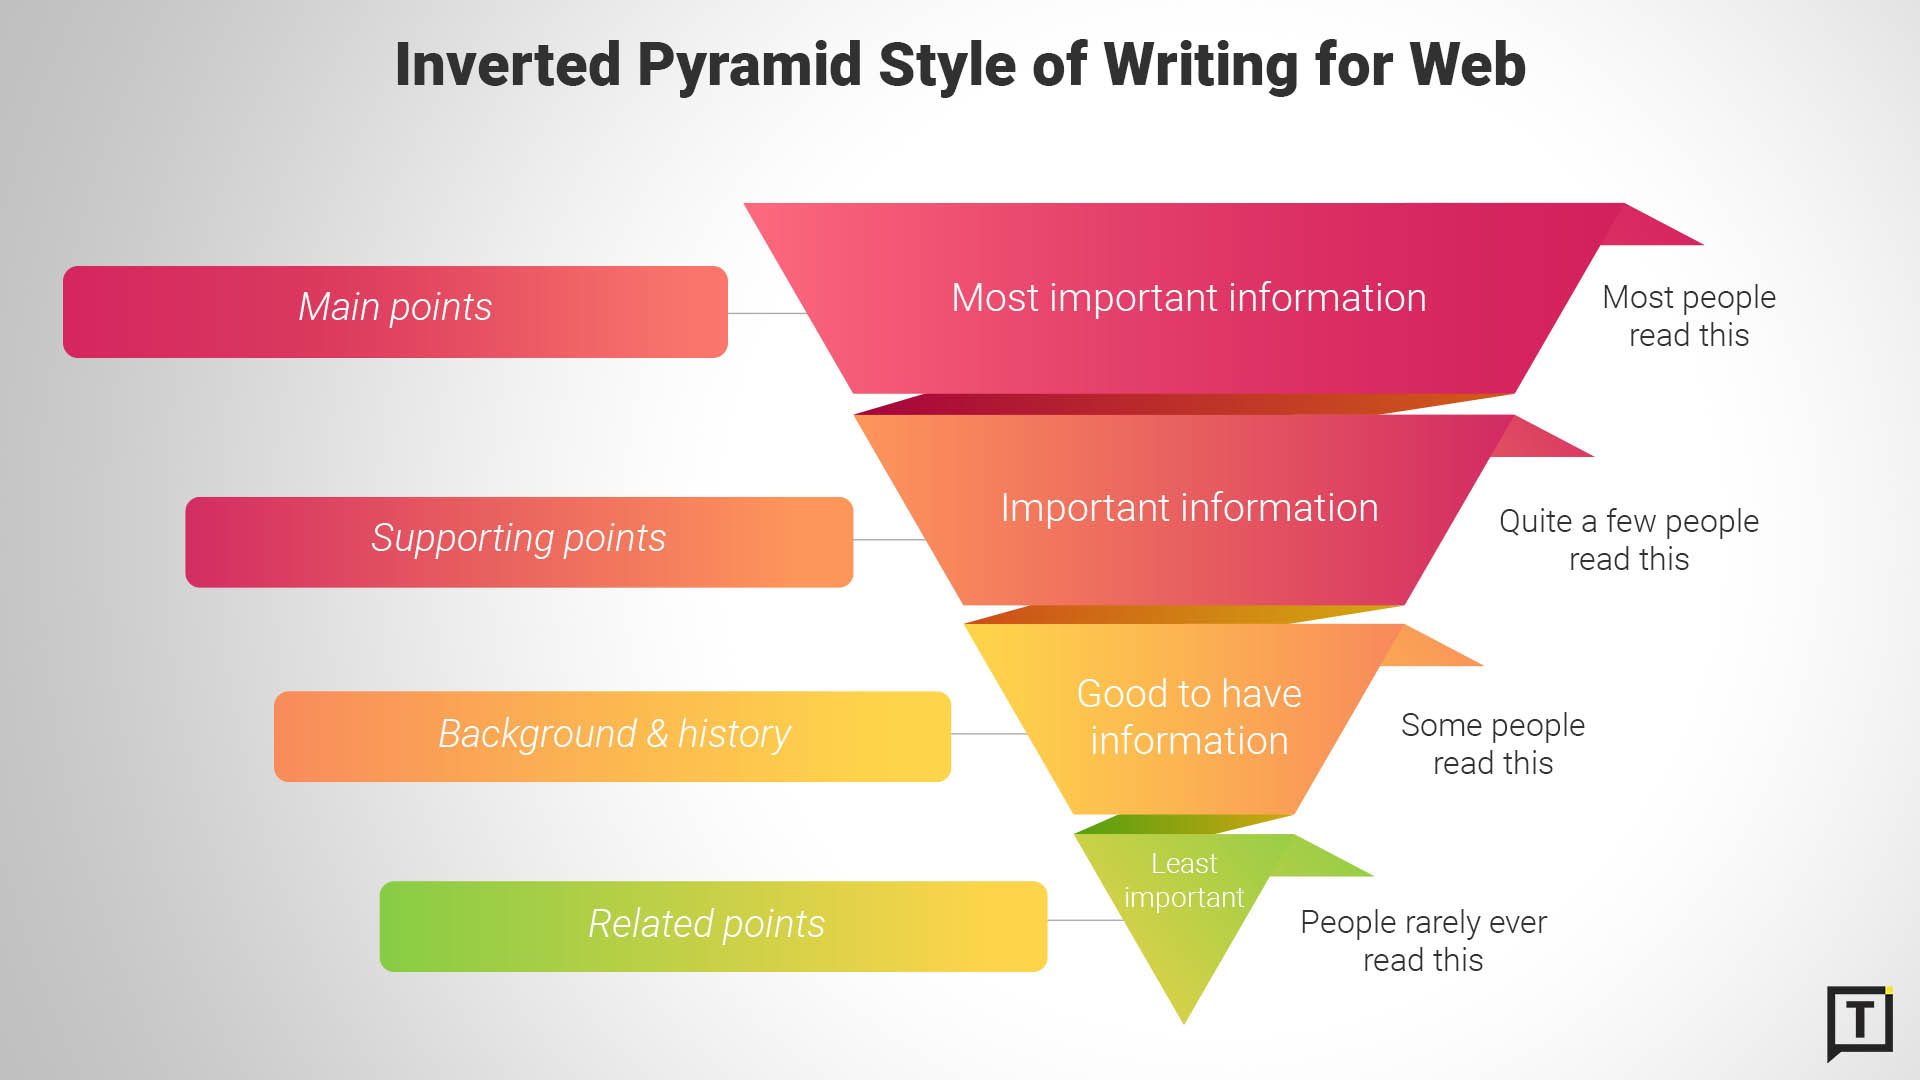 Inverted Pyramid Style of Writing for Web - The What, Why & How